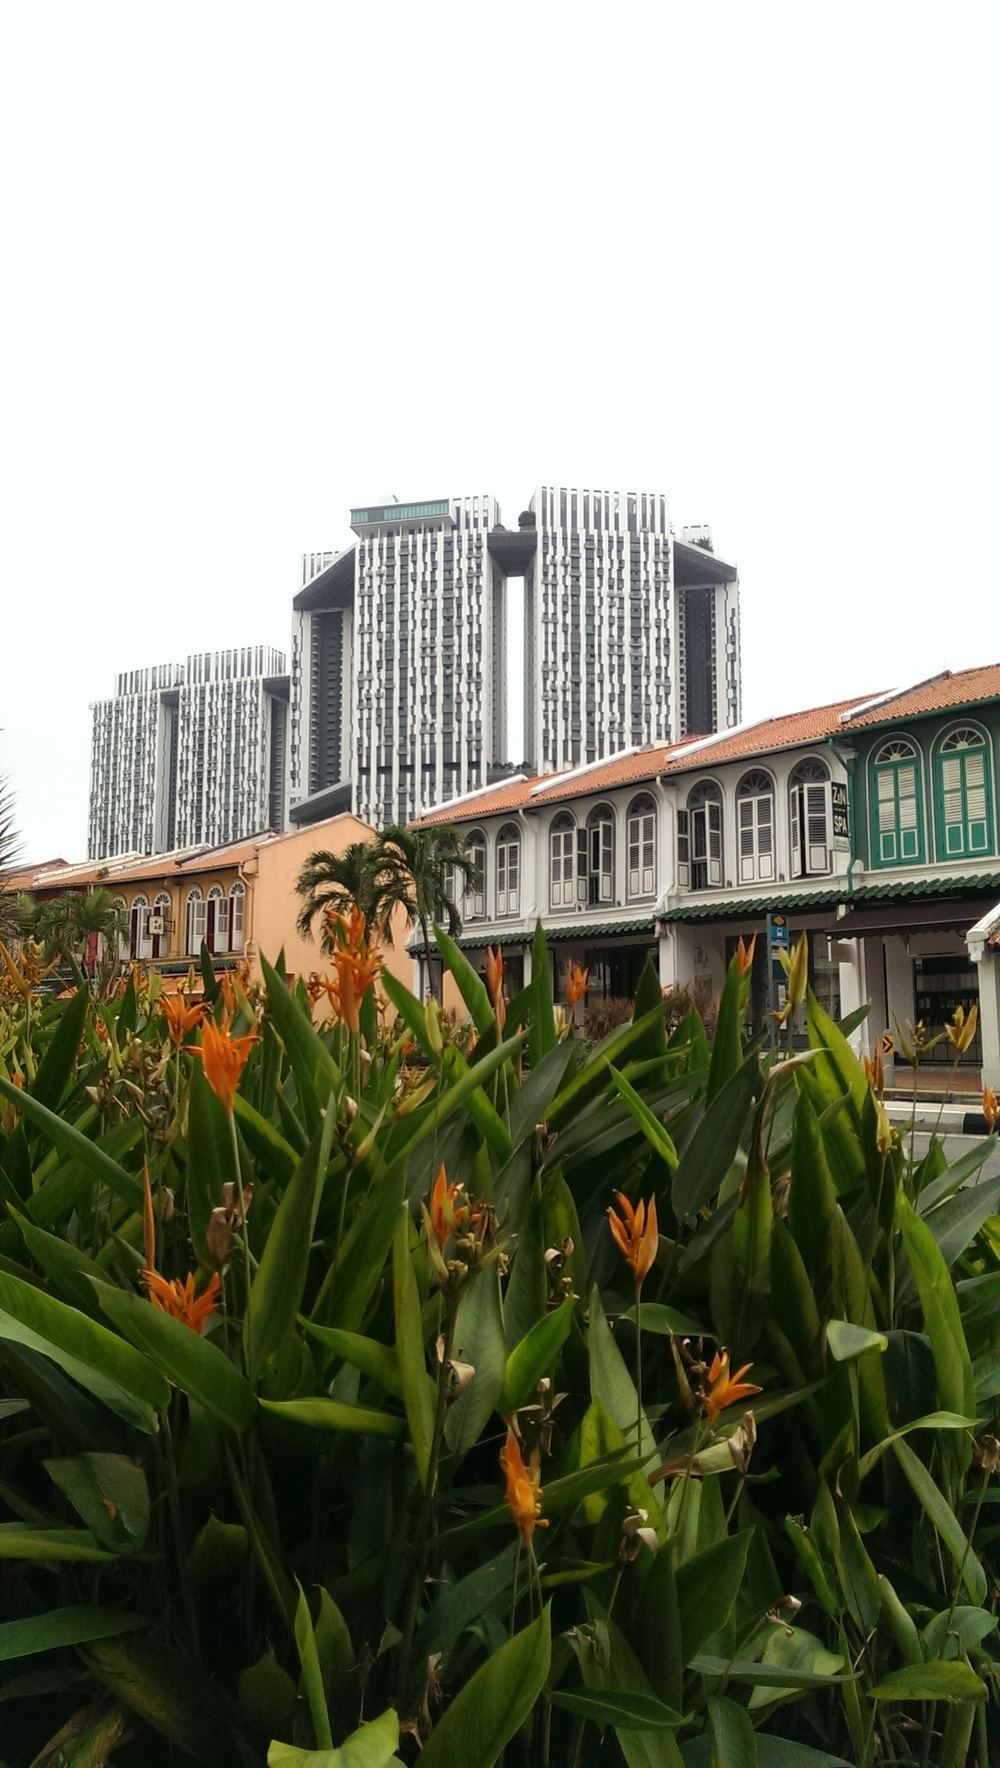 Singapore - tropic, old and skyscrapers.